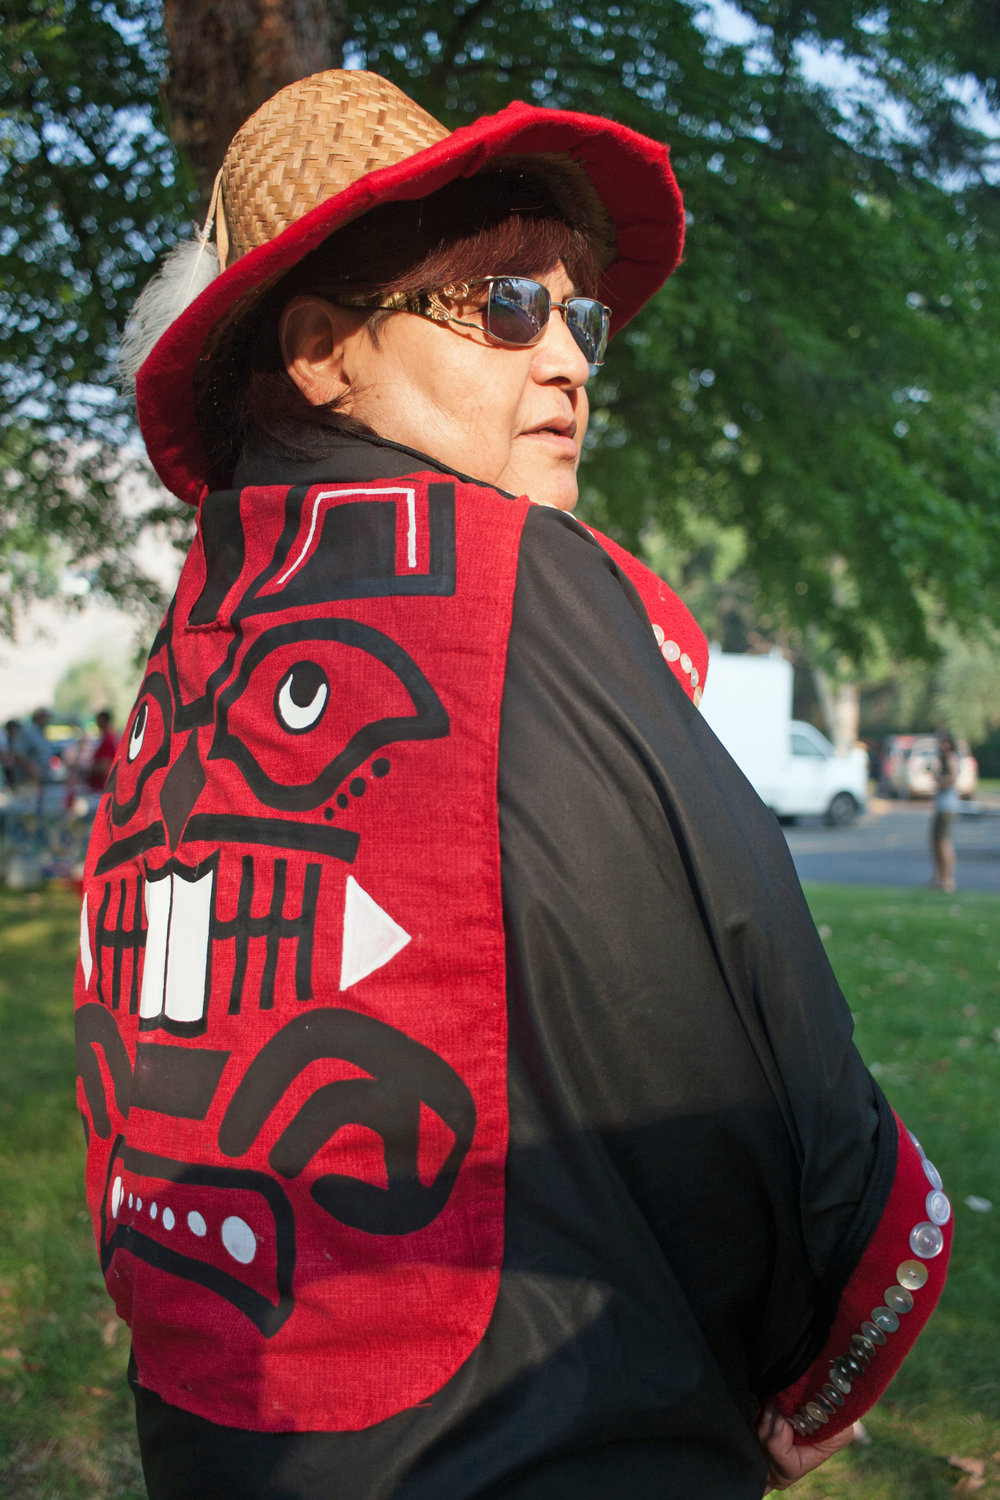 """There hasn't been this type of singing or Indian activities here in 100 years or more. It's good to open the space for all people. It makes good relations.""  -Lucinda Simpson, Lapwai, Idaho"